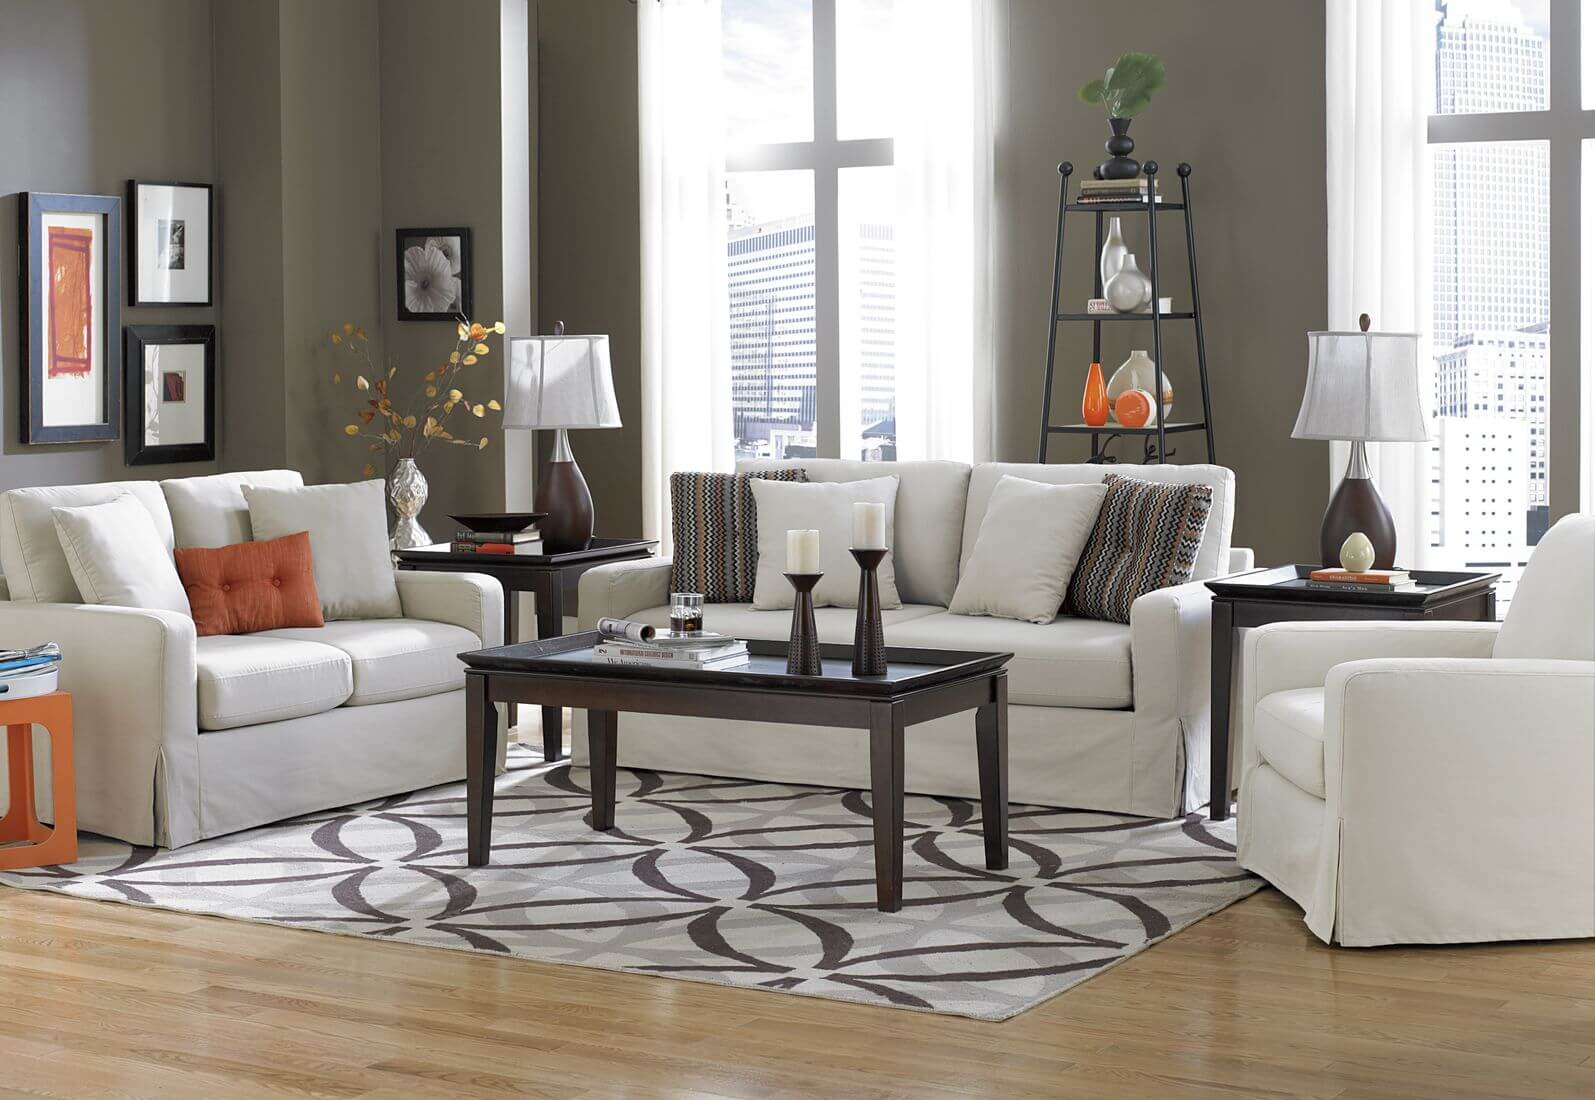 40 Living Rooms With Area Rugs For Warmth & Richness